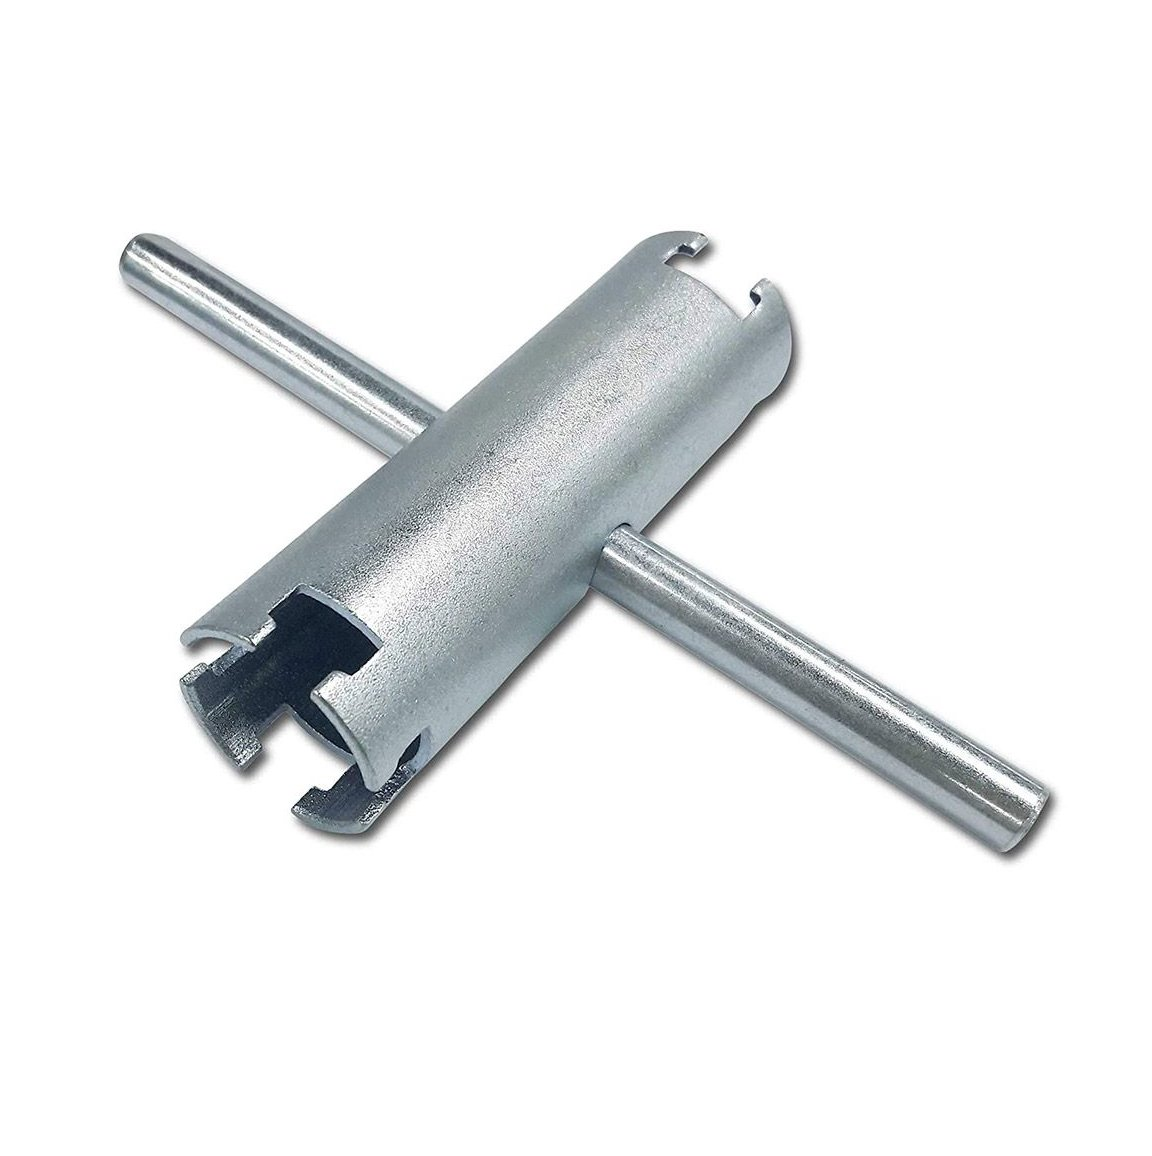 NEW Thrifco Plumbing 9410015 #4949 Basket Strainer Wrench